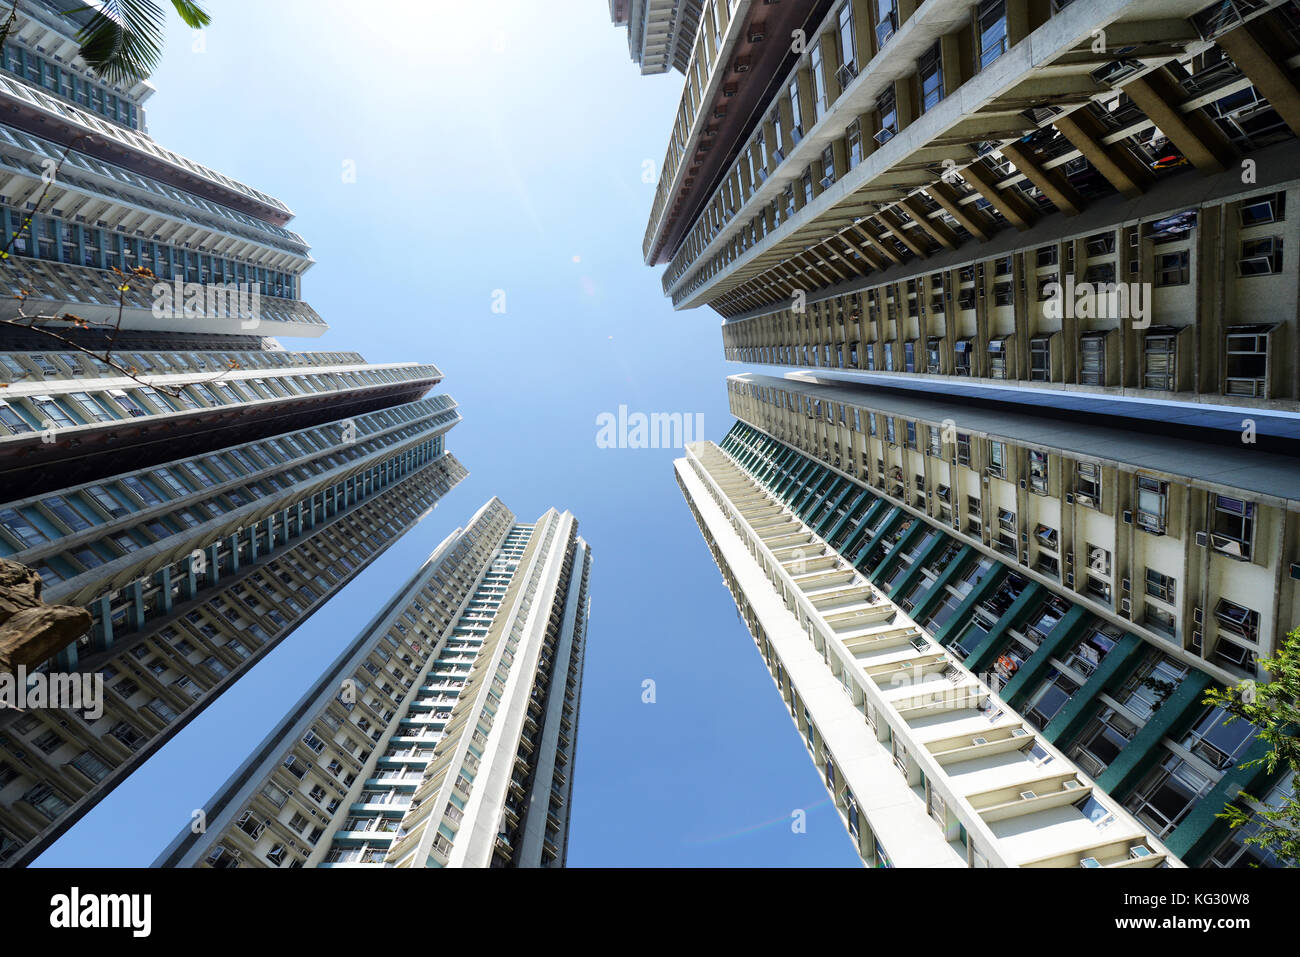 High residential towers in the South Horizons complex on Ap Lei Chau island in Hong Kong. - Stock Image